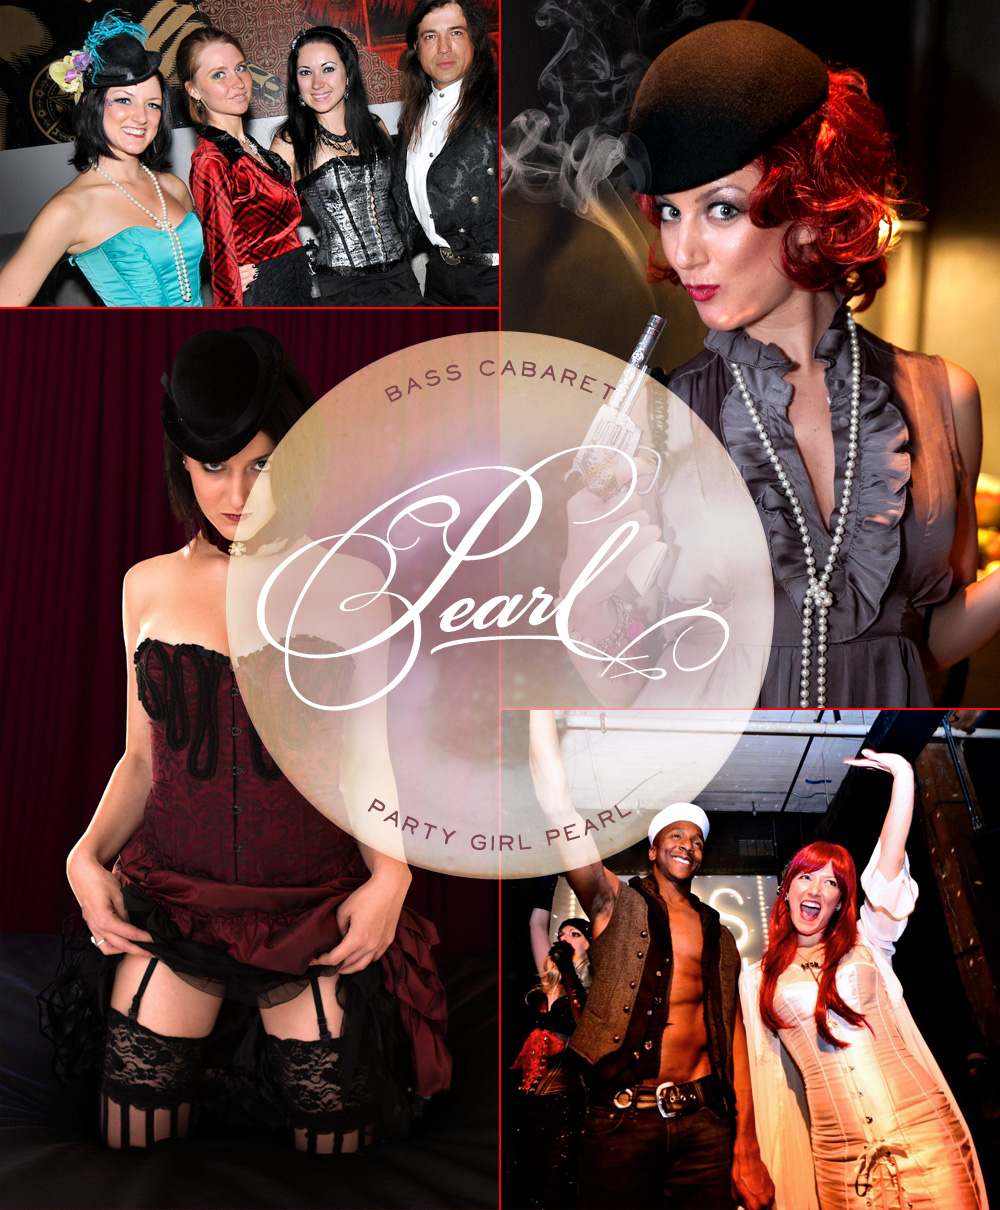 party-girl-pearl_bass-cabaret